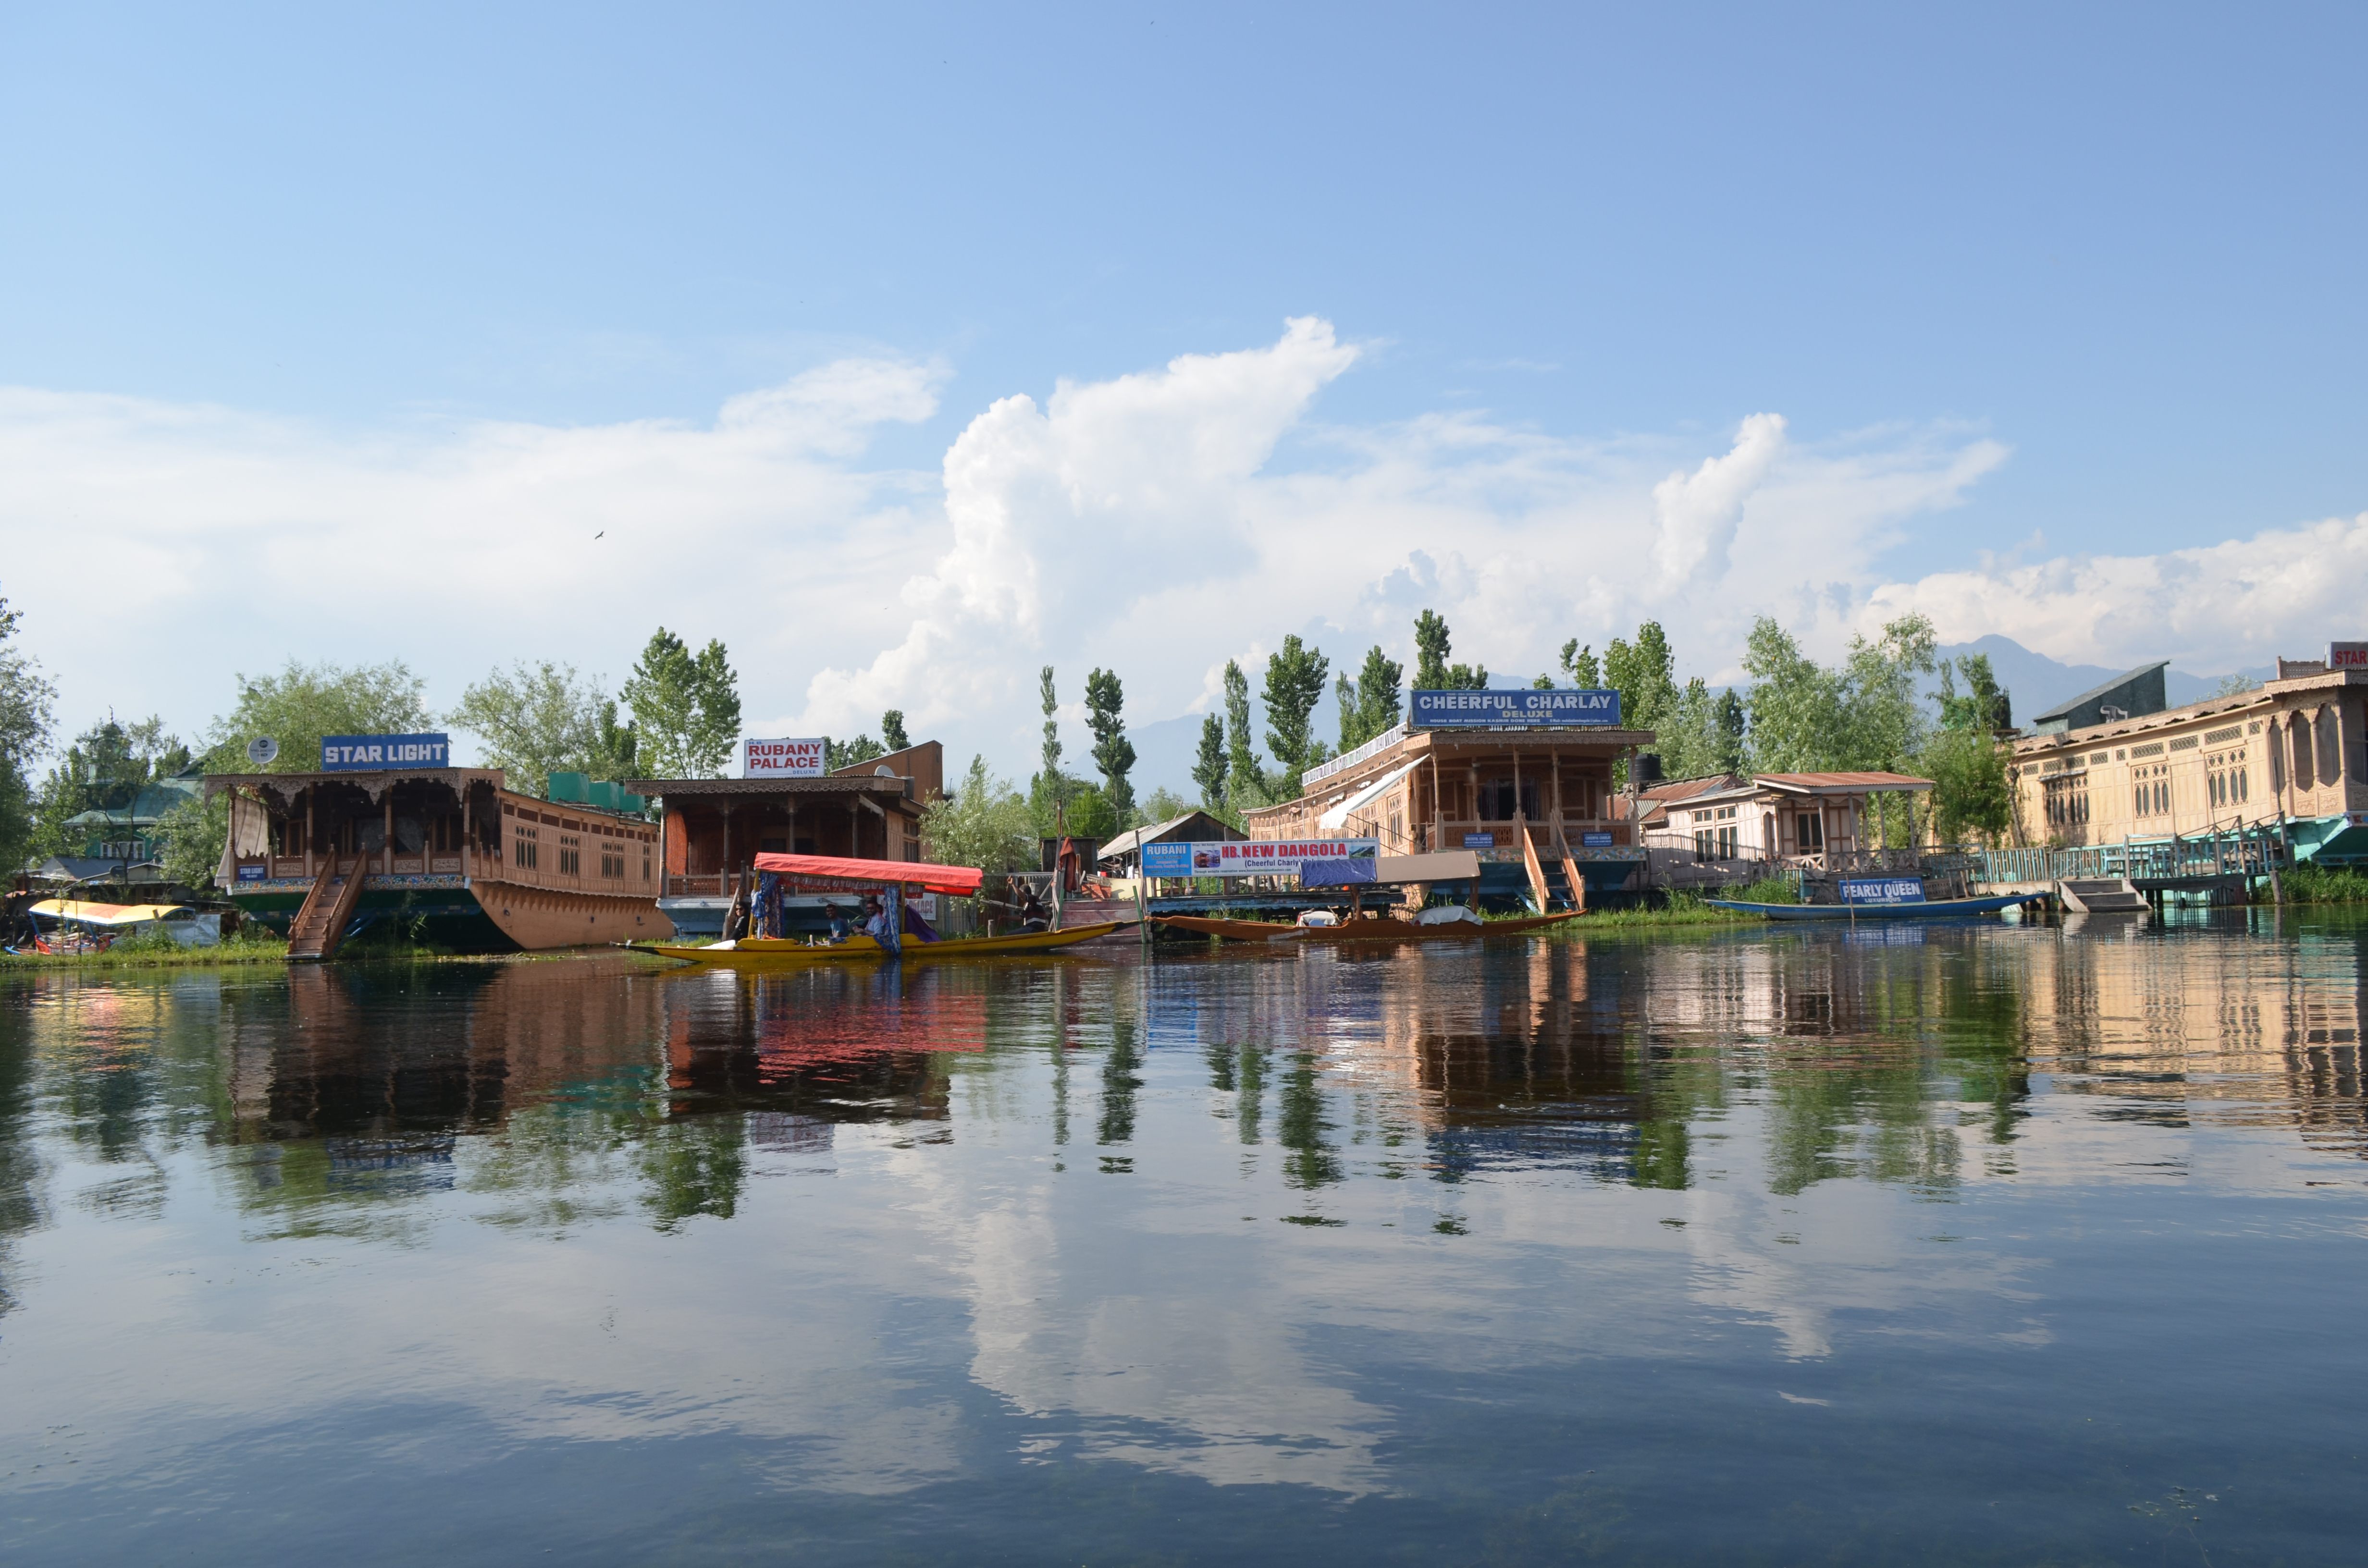 The usually bustling Dal Lake, the center of  attraction in Kashmir's summer capital Srinagar, wore a desolate look this year. (A. Pasricha/VOA)